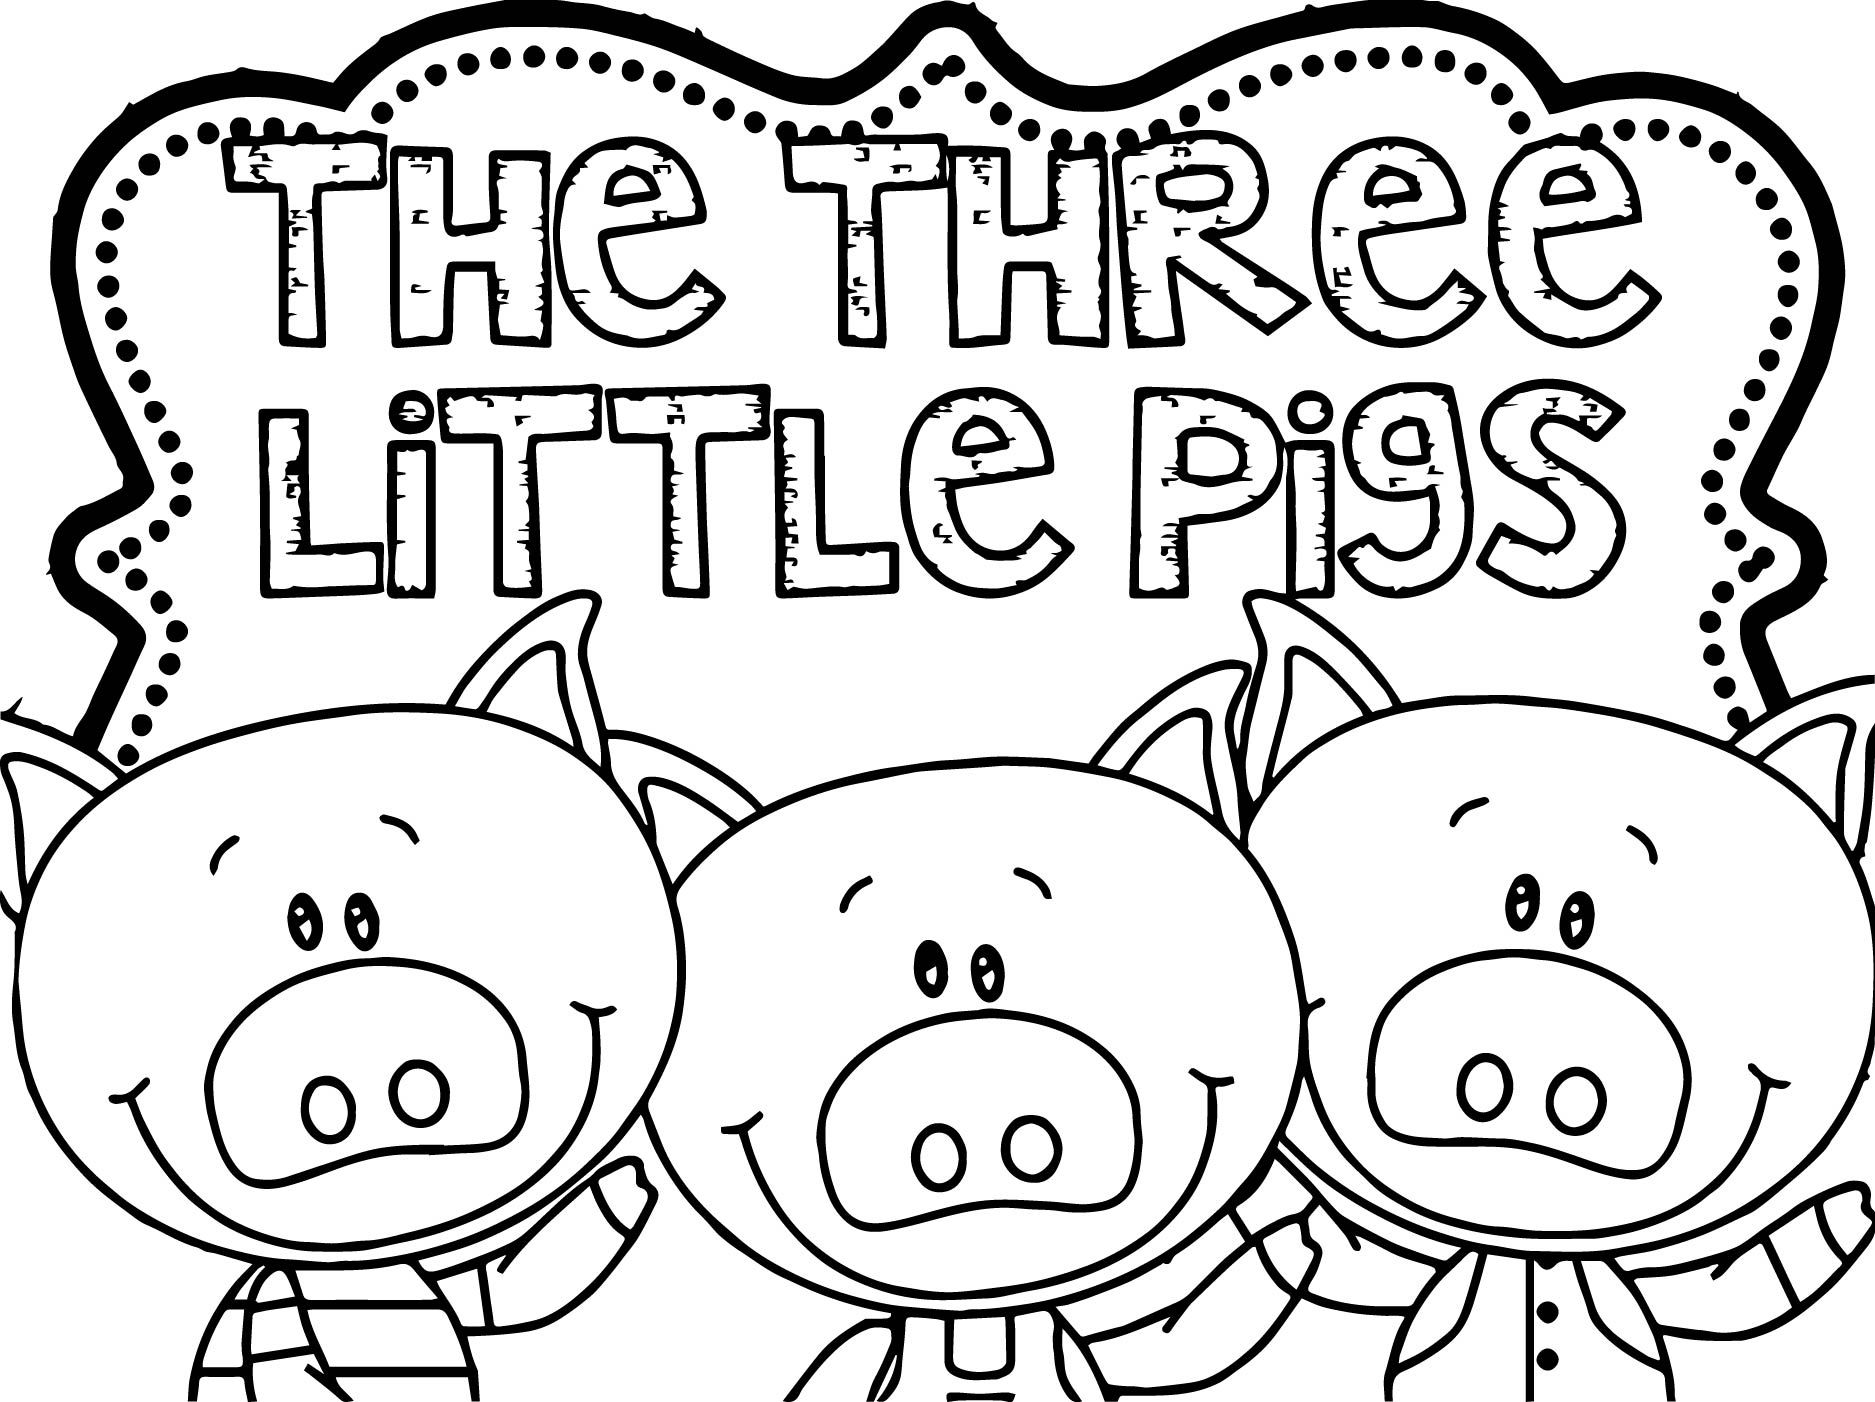 Awesome Three Little Pigs Coloring Page Peppa Pig Coloring Pages Little Pigs Cartoon Coloring Pages